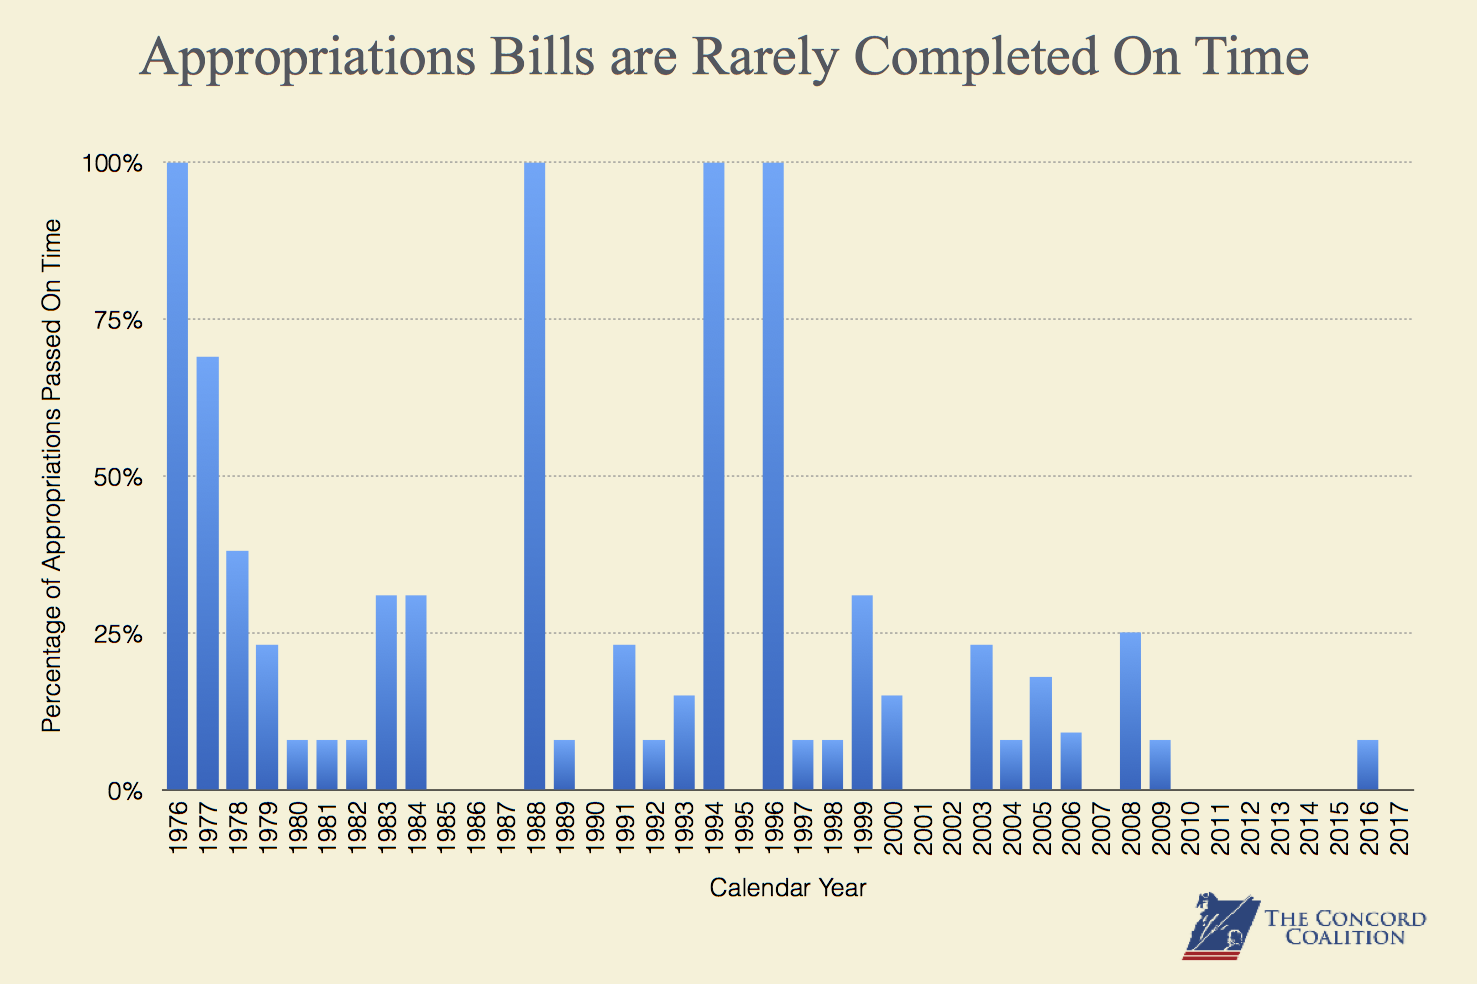 Appropriation Bills are Rarely Completed on Time